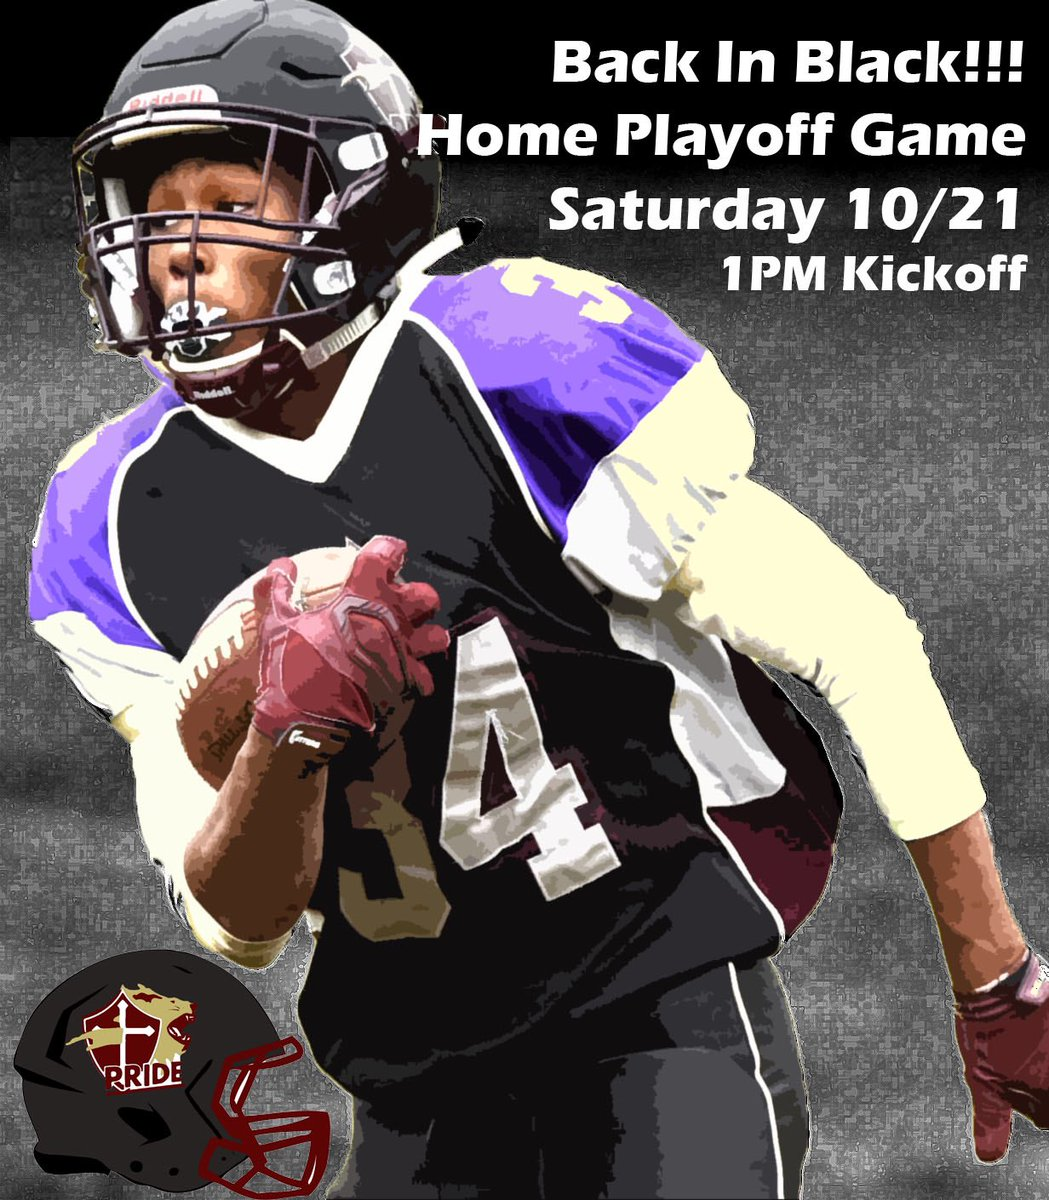 We need to be focused &amp; energetic in today&#39;s prep for tomorrow&#39;s HOME playoff game #PRIDE #makeAstatement<br>http://pic.twitter.com/KAvMSgnpEe